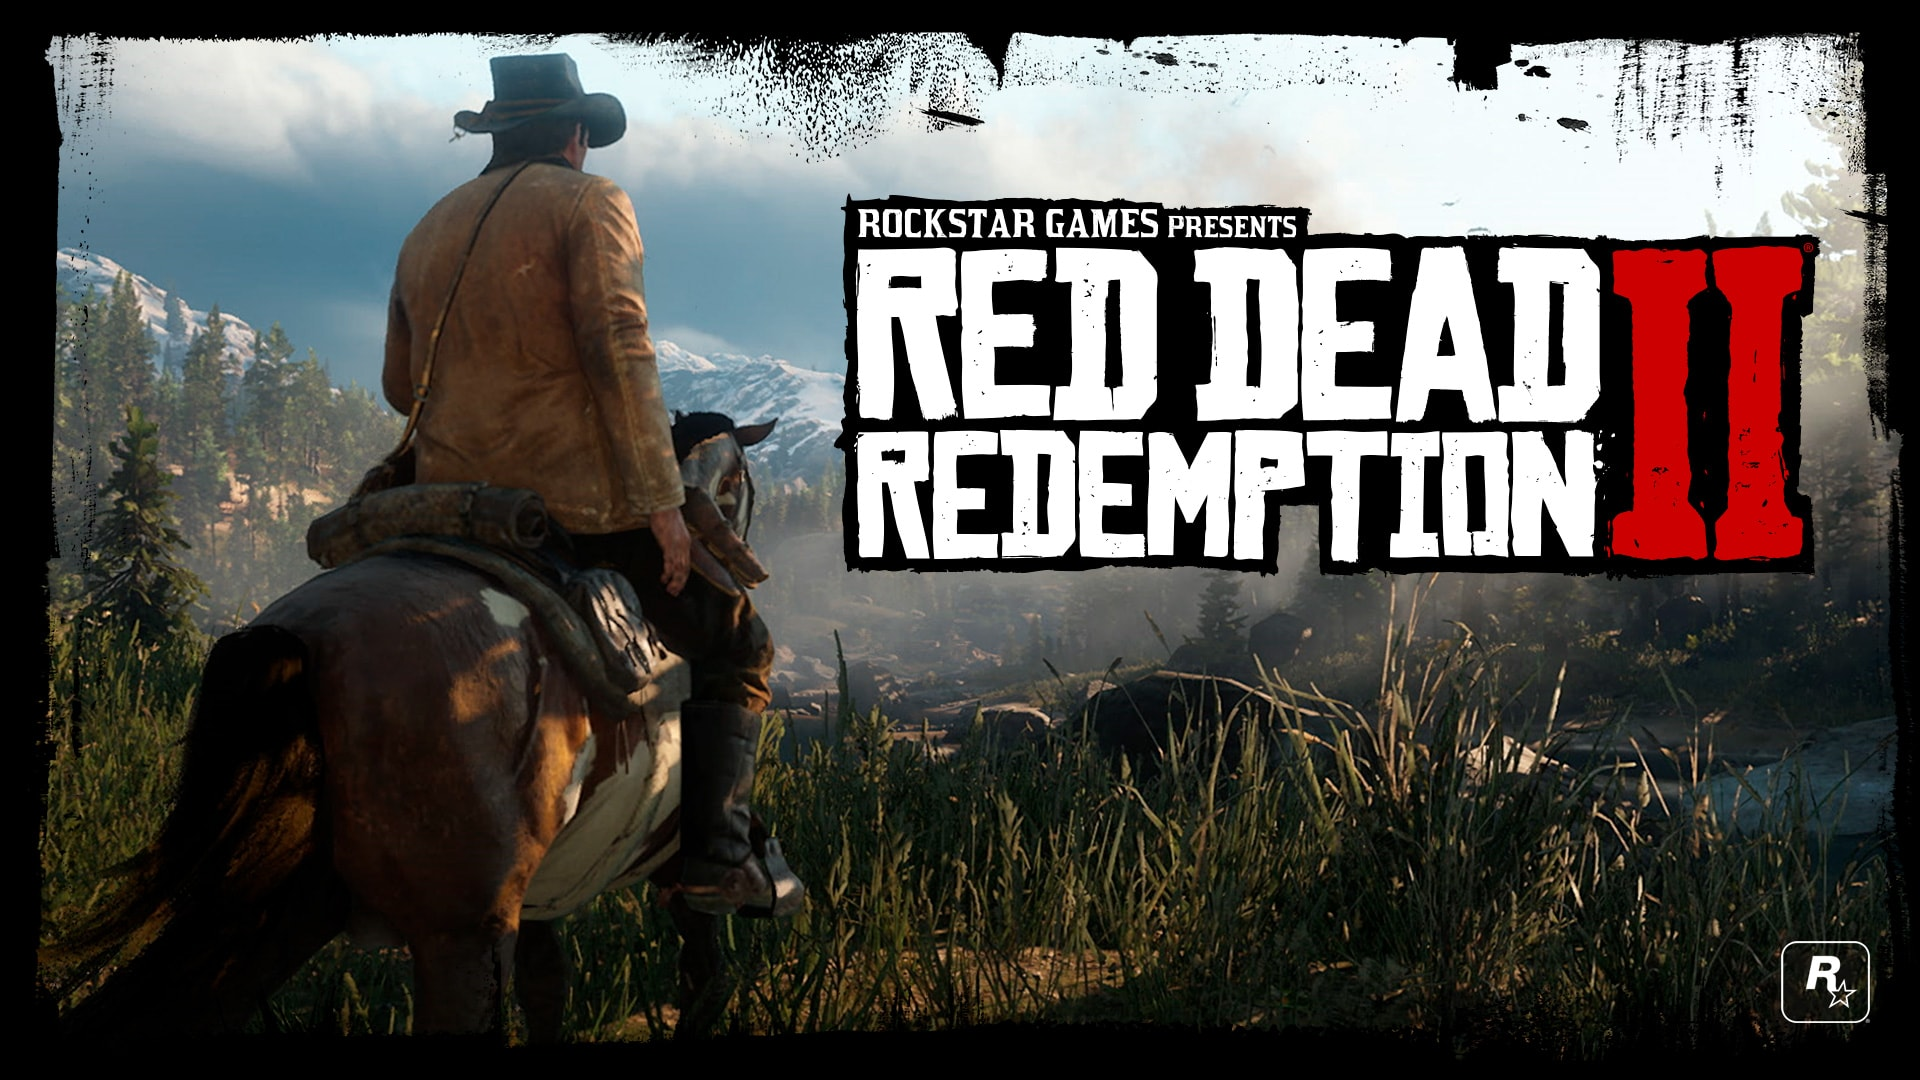 Check Some of The Frontiers and Towns in Red Dead Redemption 2